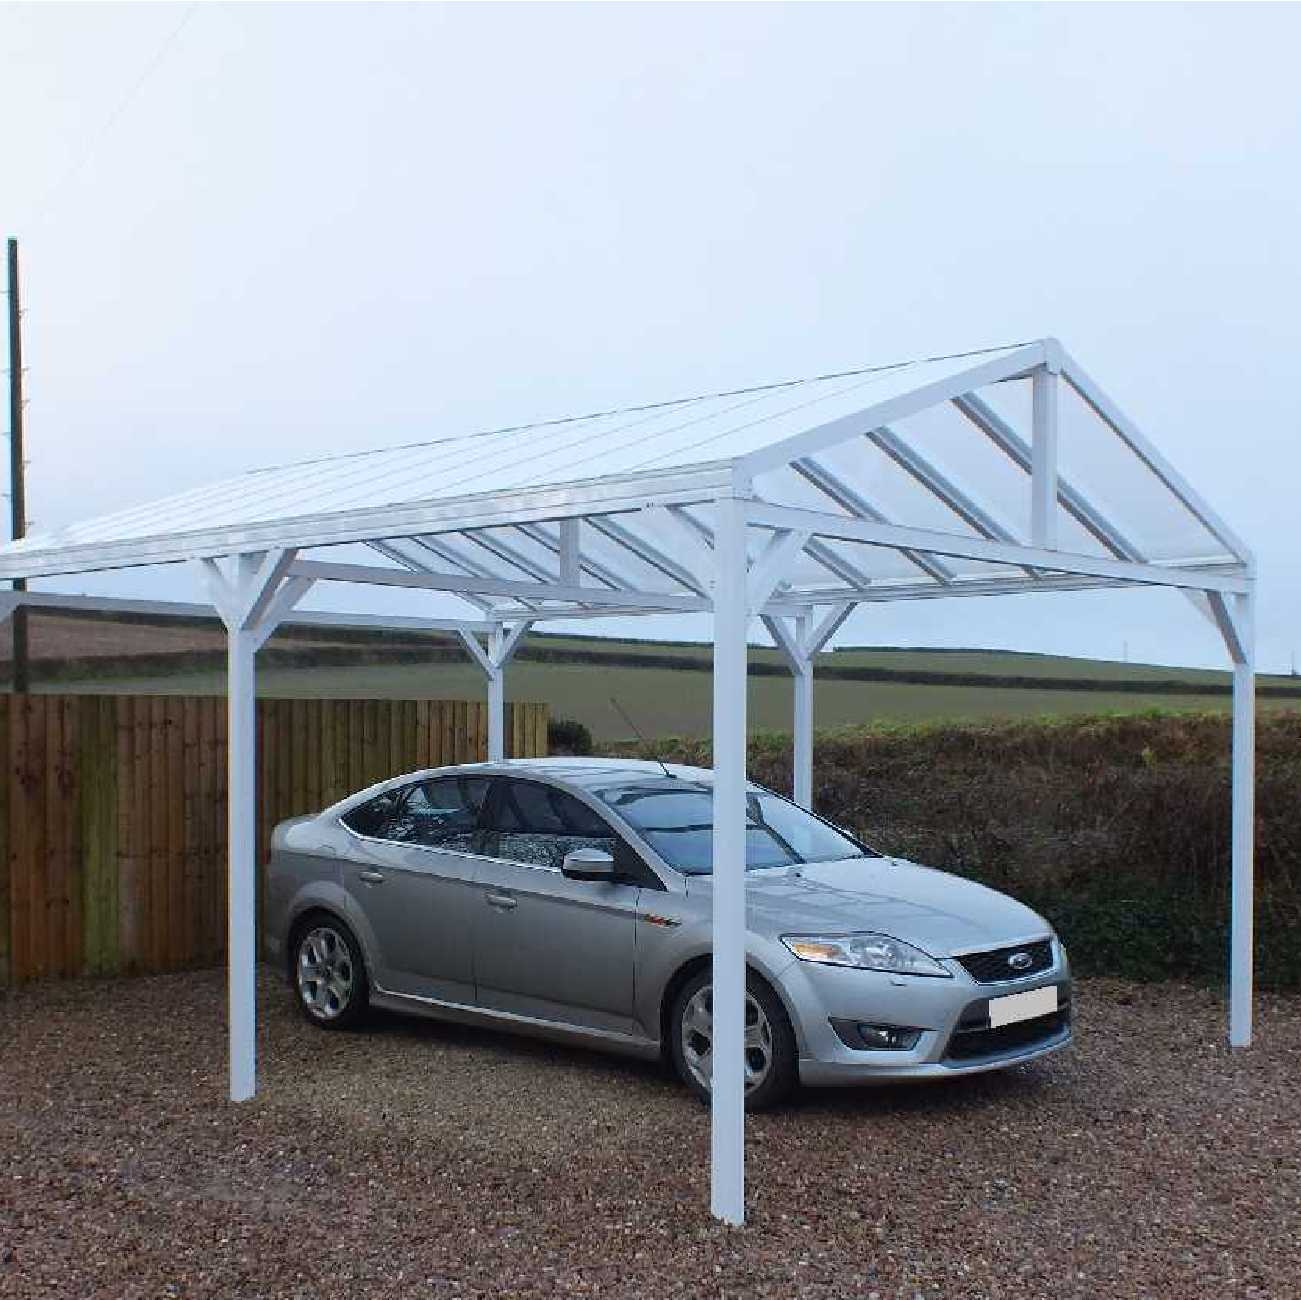 Affordable Omega Smart Free-Standing, Gable-Roof (type 1) Canopy with 16mm Polycarbonate Glazing - 4.2m (W) x 4.0m (P), (6) Supporting Posts